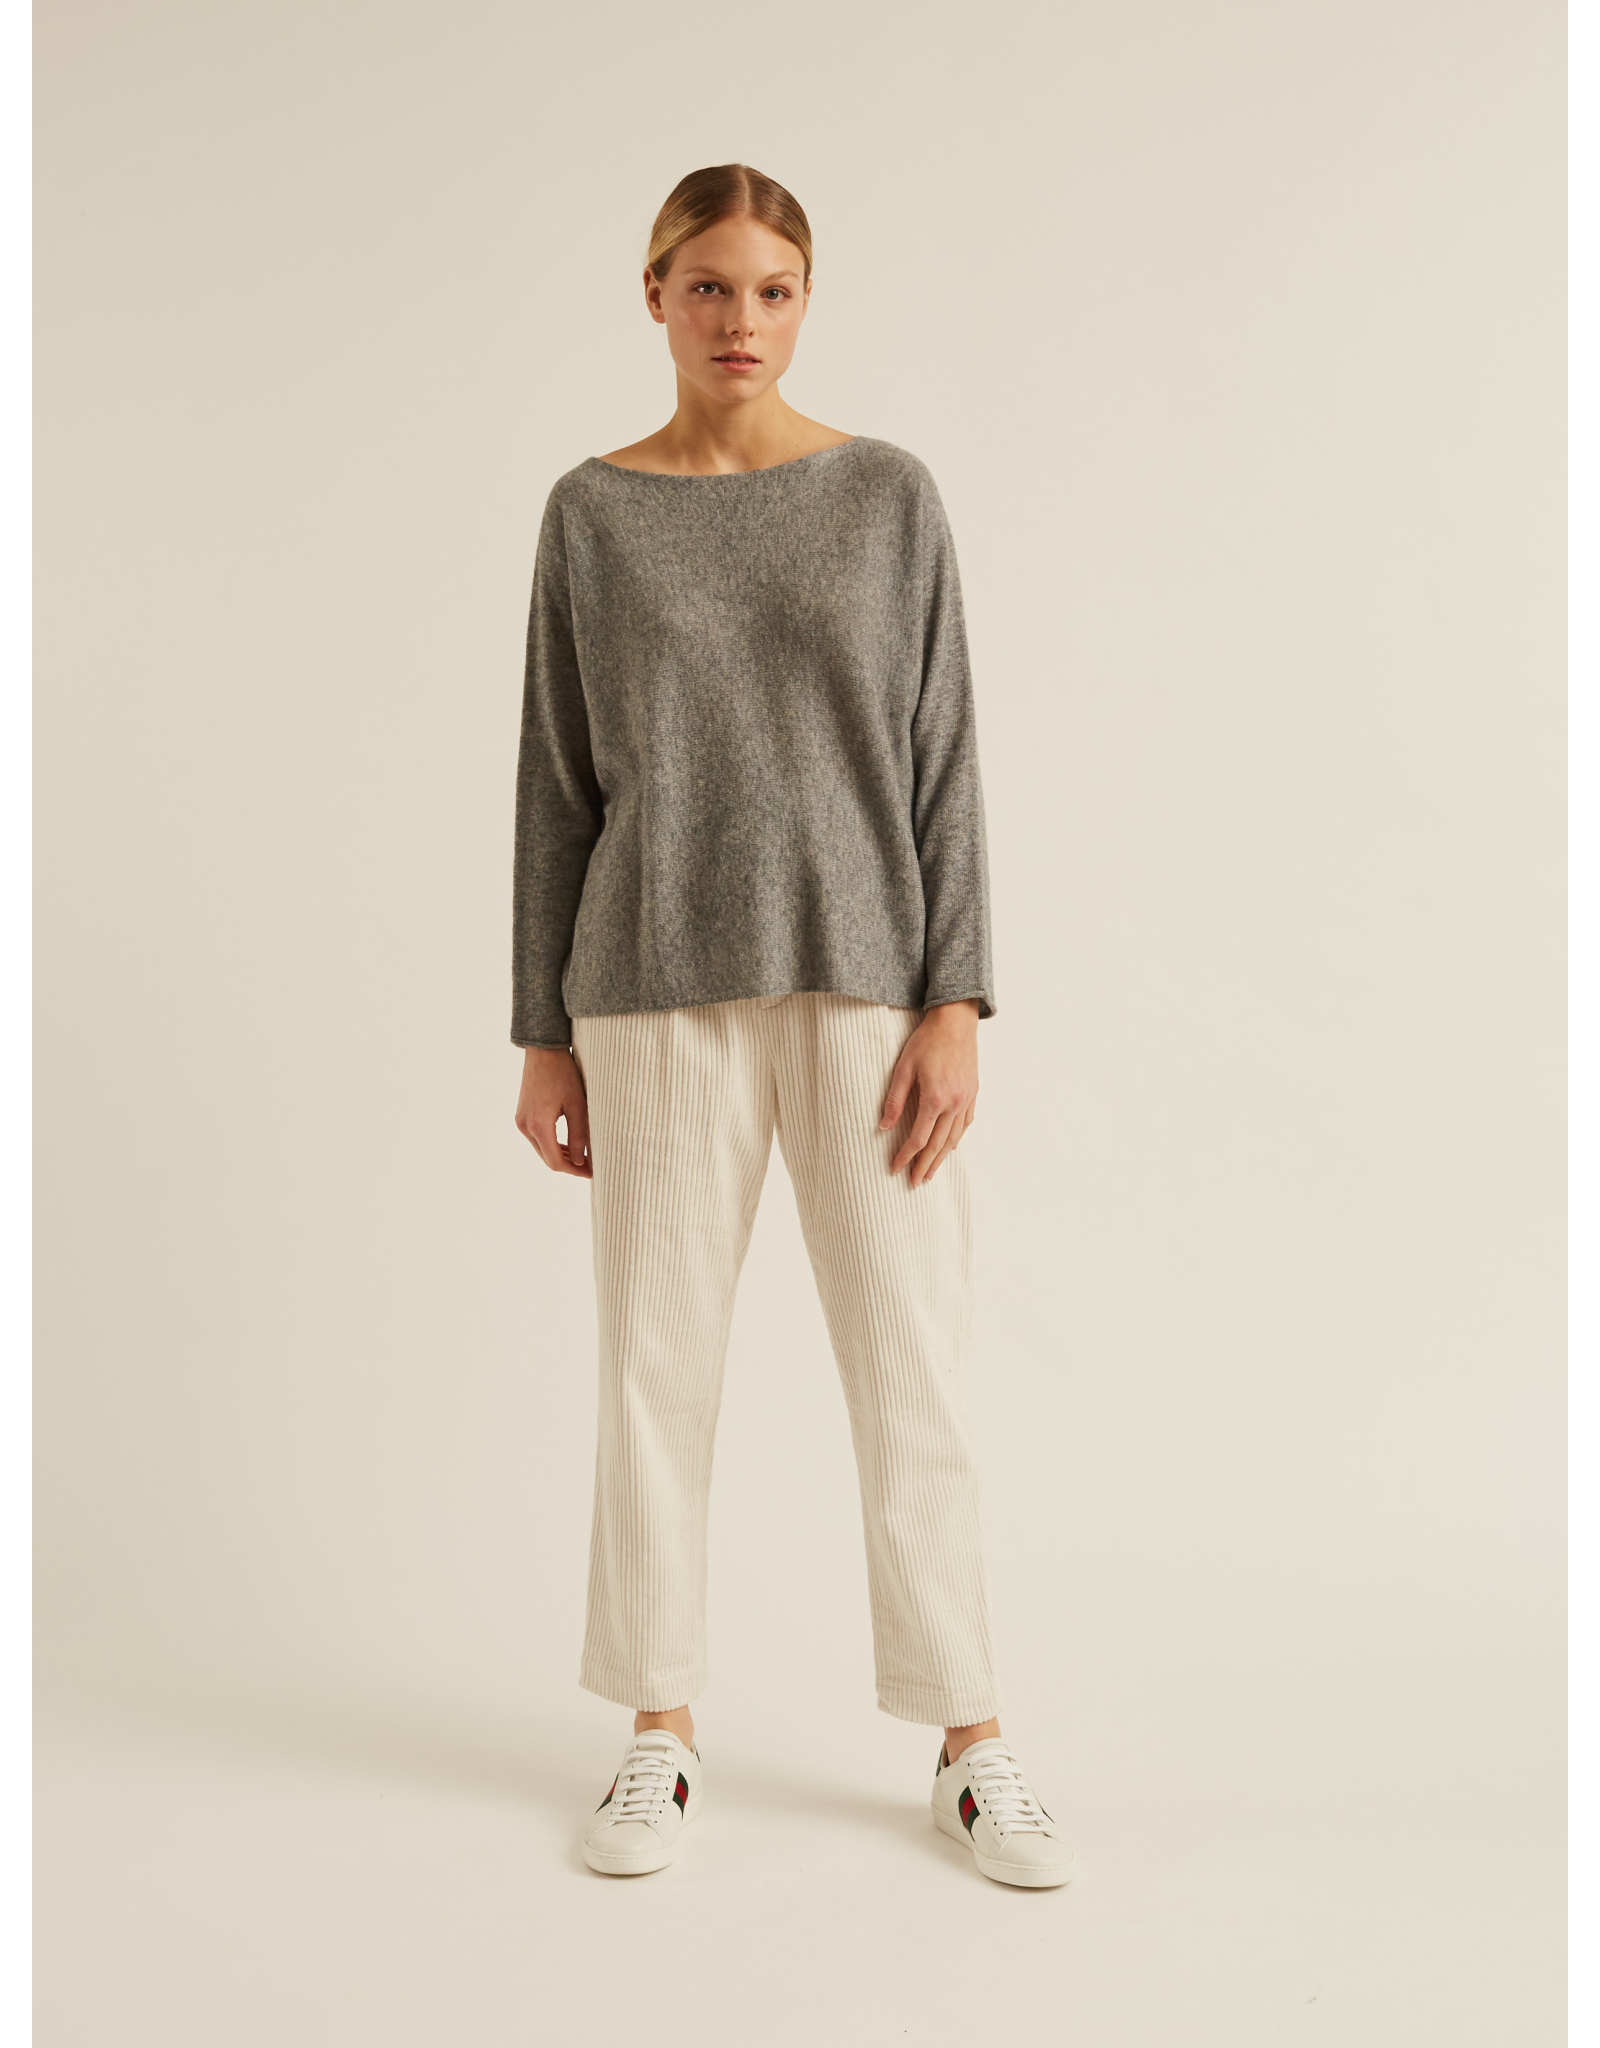 Naif - Mist Boatneck Cashmere Sweater